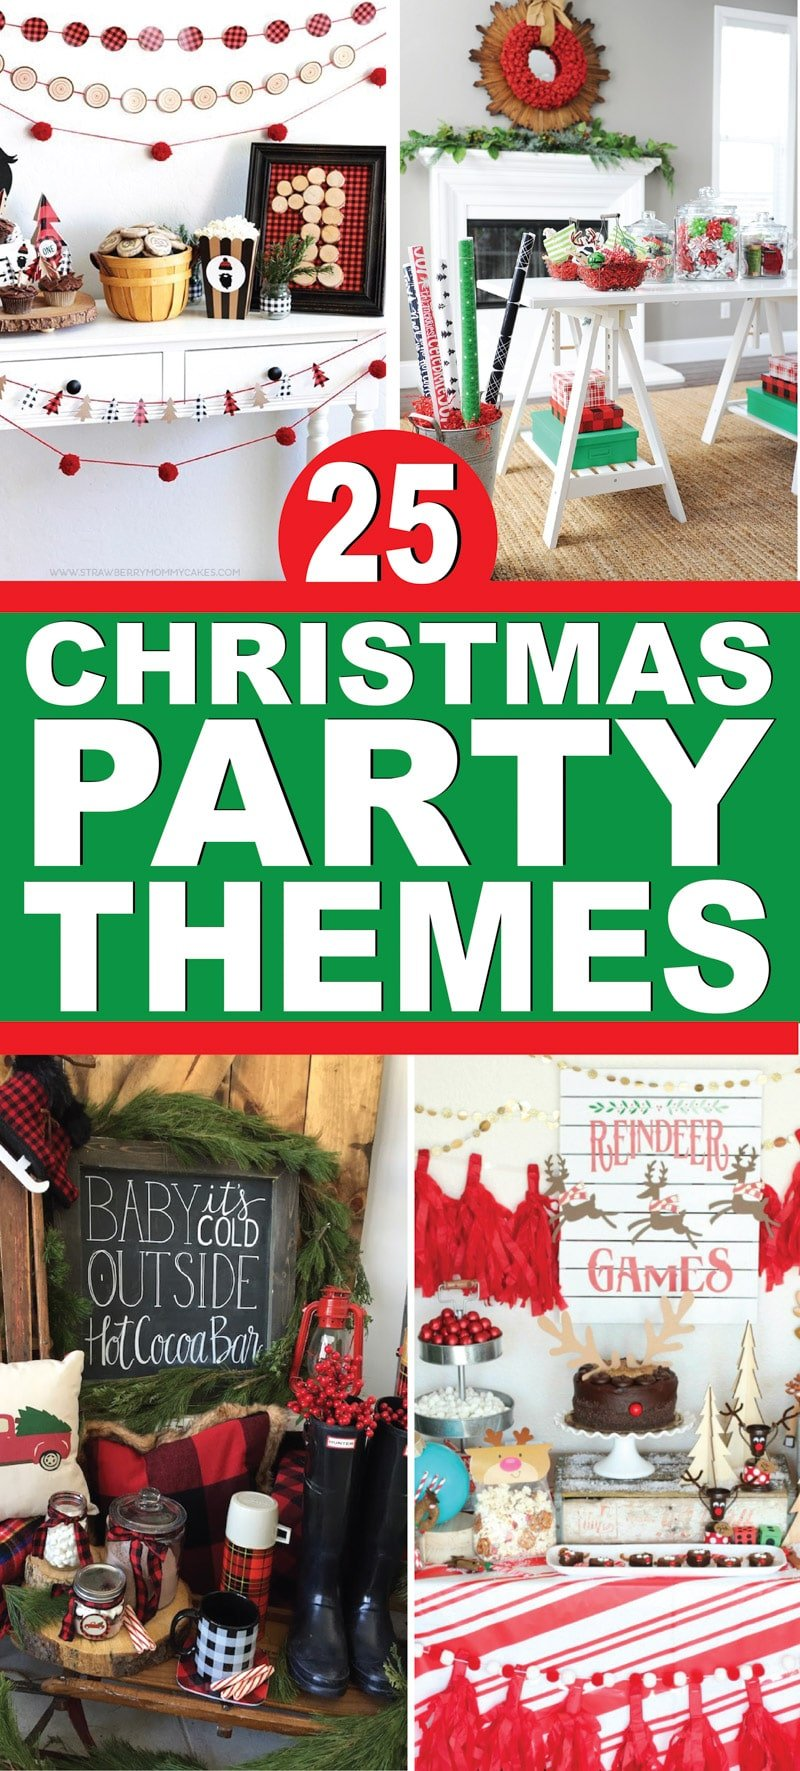 25 of the best Christmas party themes! Great ideas for adults, for kids, and party themes for the entire family!